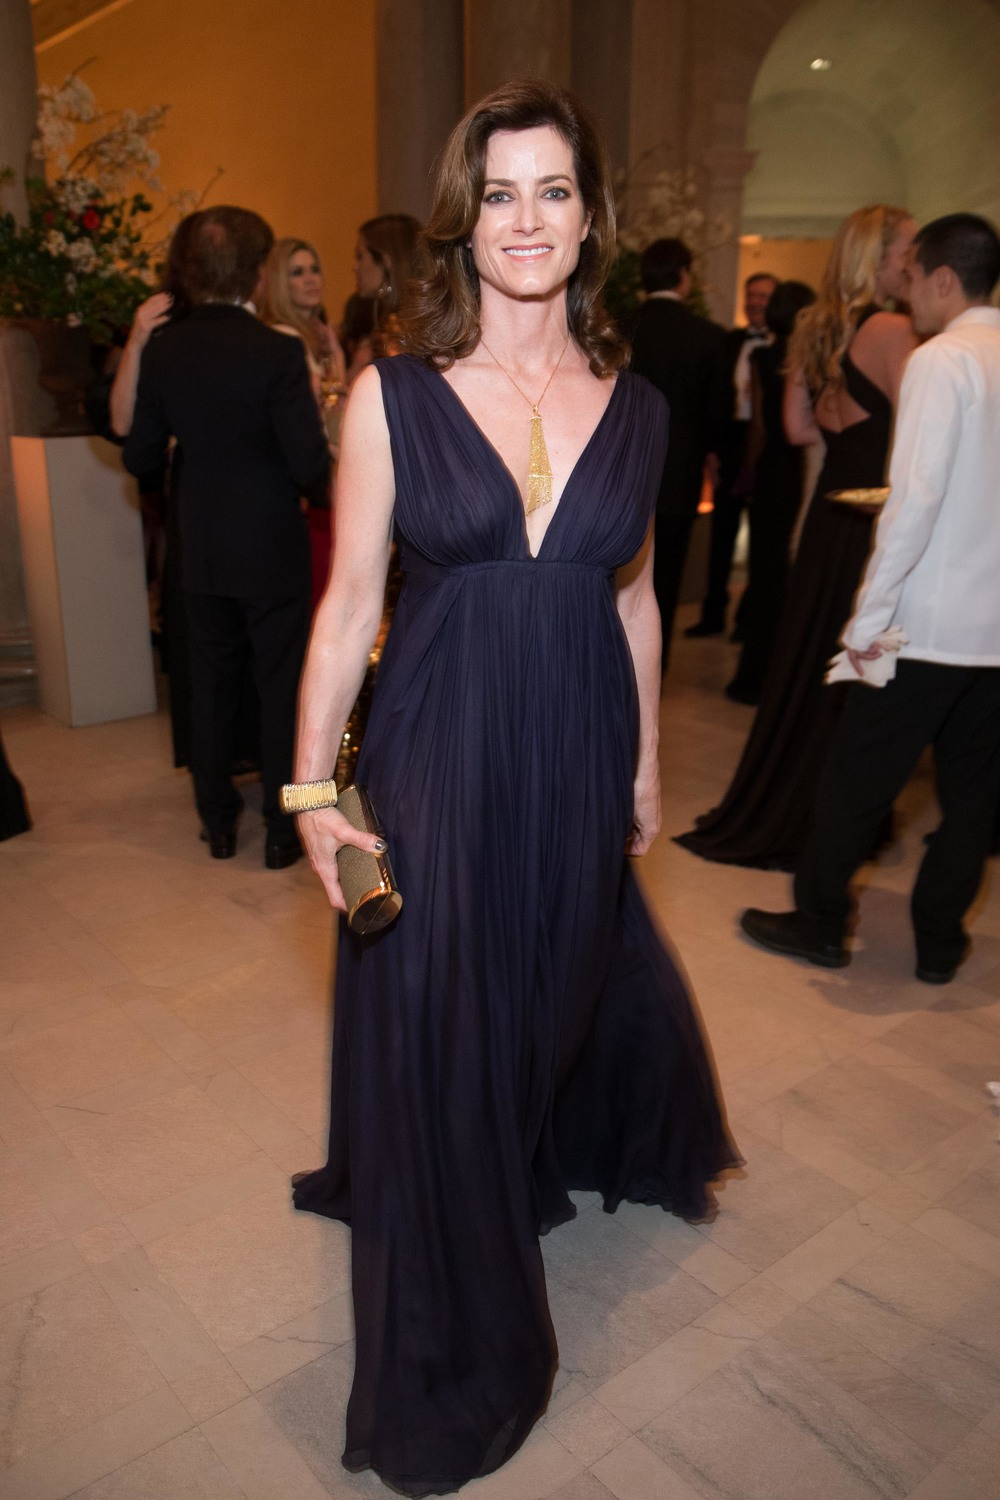 Carol Bonnie at the Salvatore Ferragamo 2014 Mid-Winter gala to benefit the Fine Arts Museums, San Francisco, wearing Salvatore Ferragamo